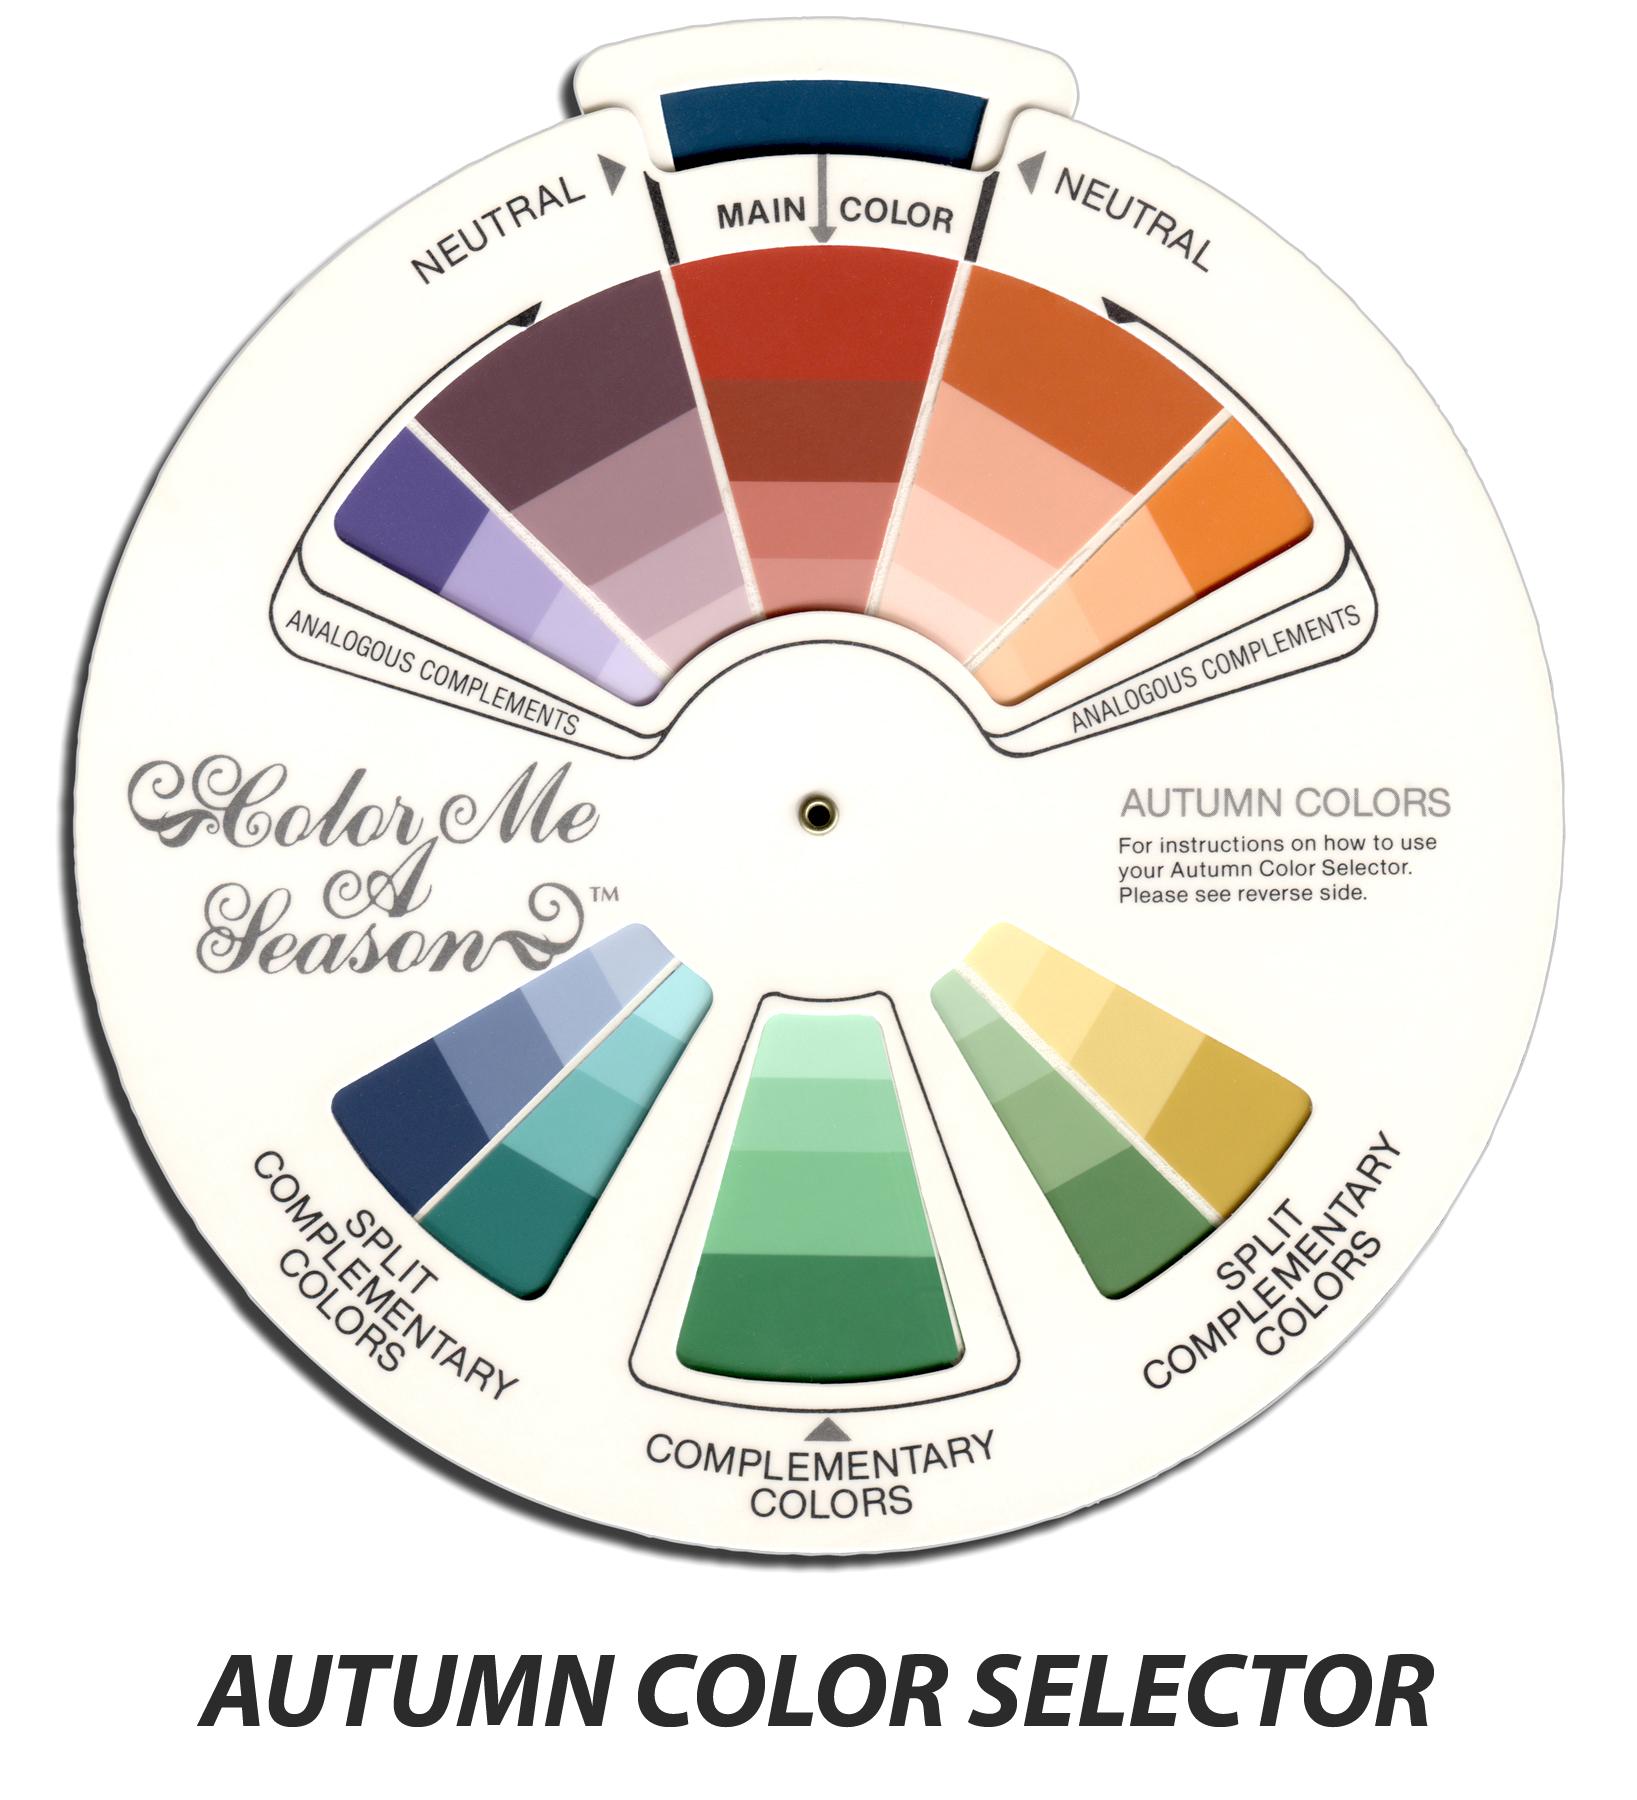 autumnselector-text-200ppi.jpg